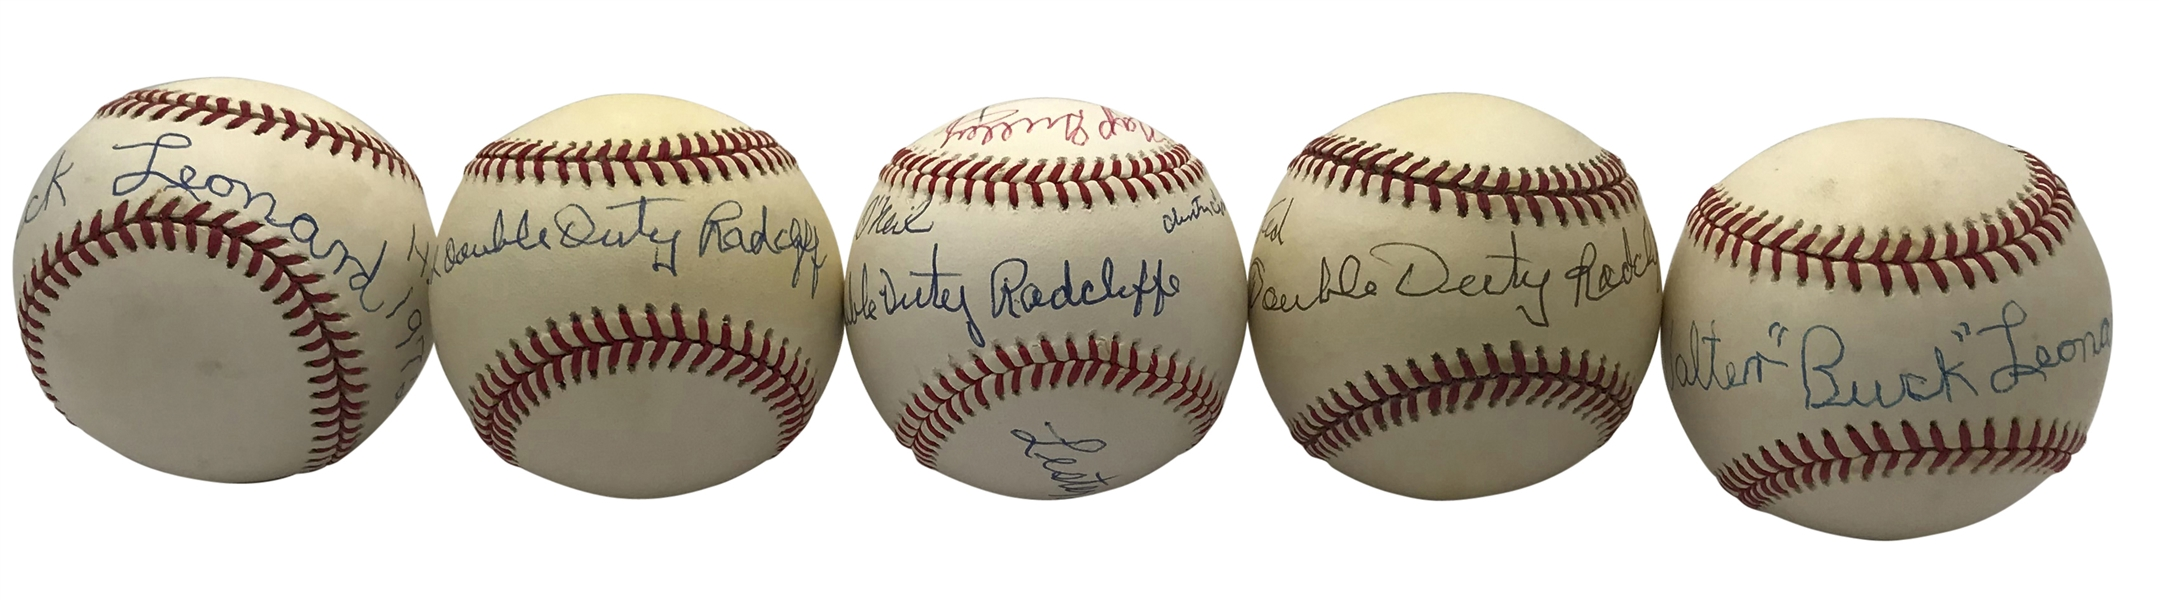 Lot of Five (5) Negro League Greats Signed Baseballs w/ Leonard, Radcliffe & Others (Beckett/BAS Guaranteed)